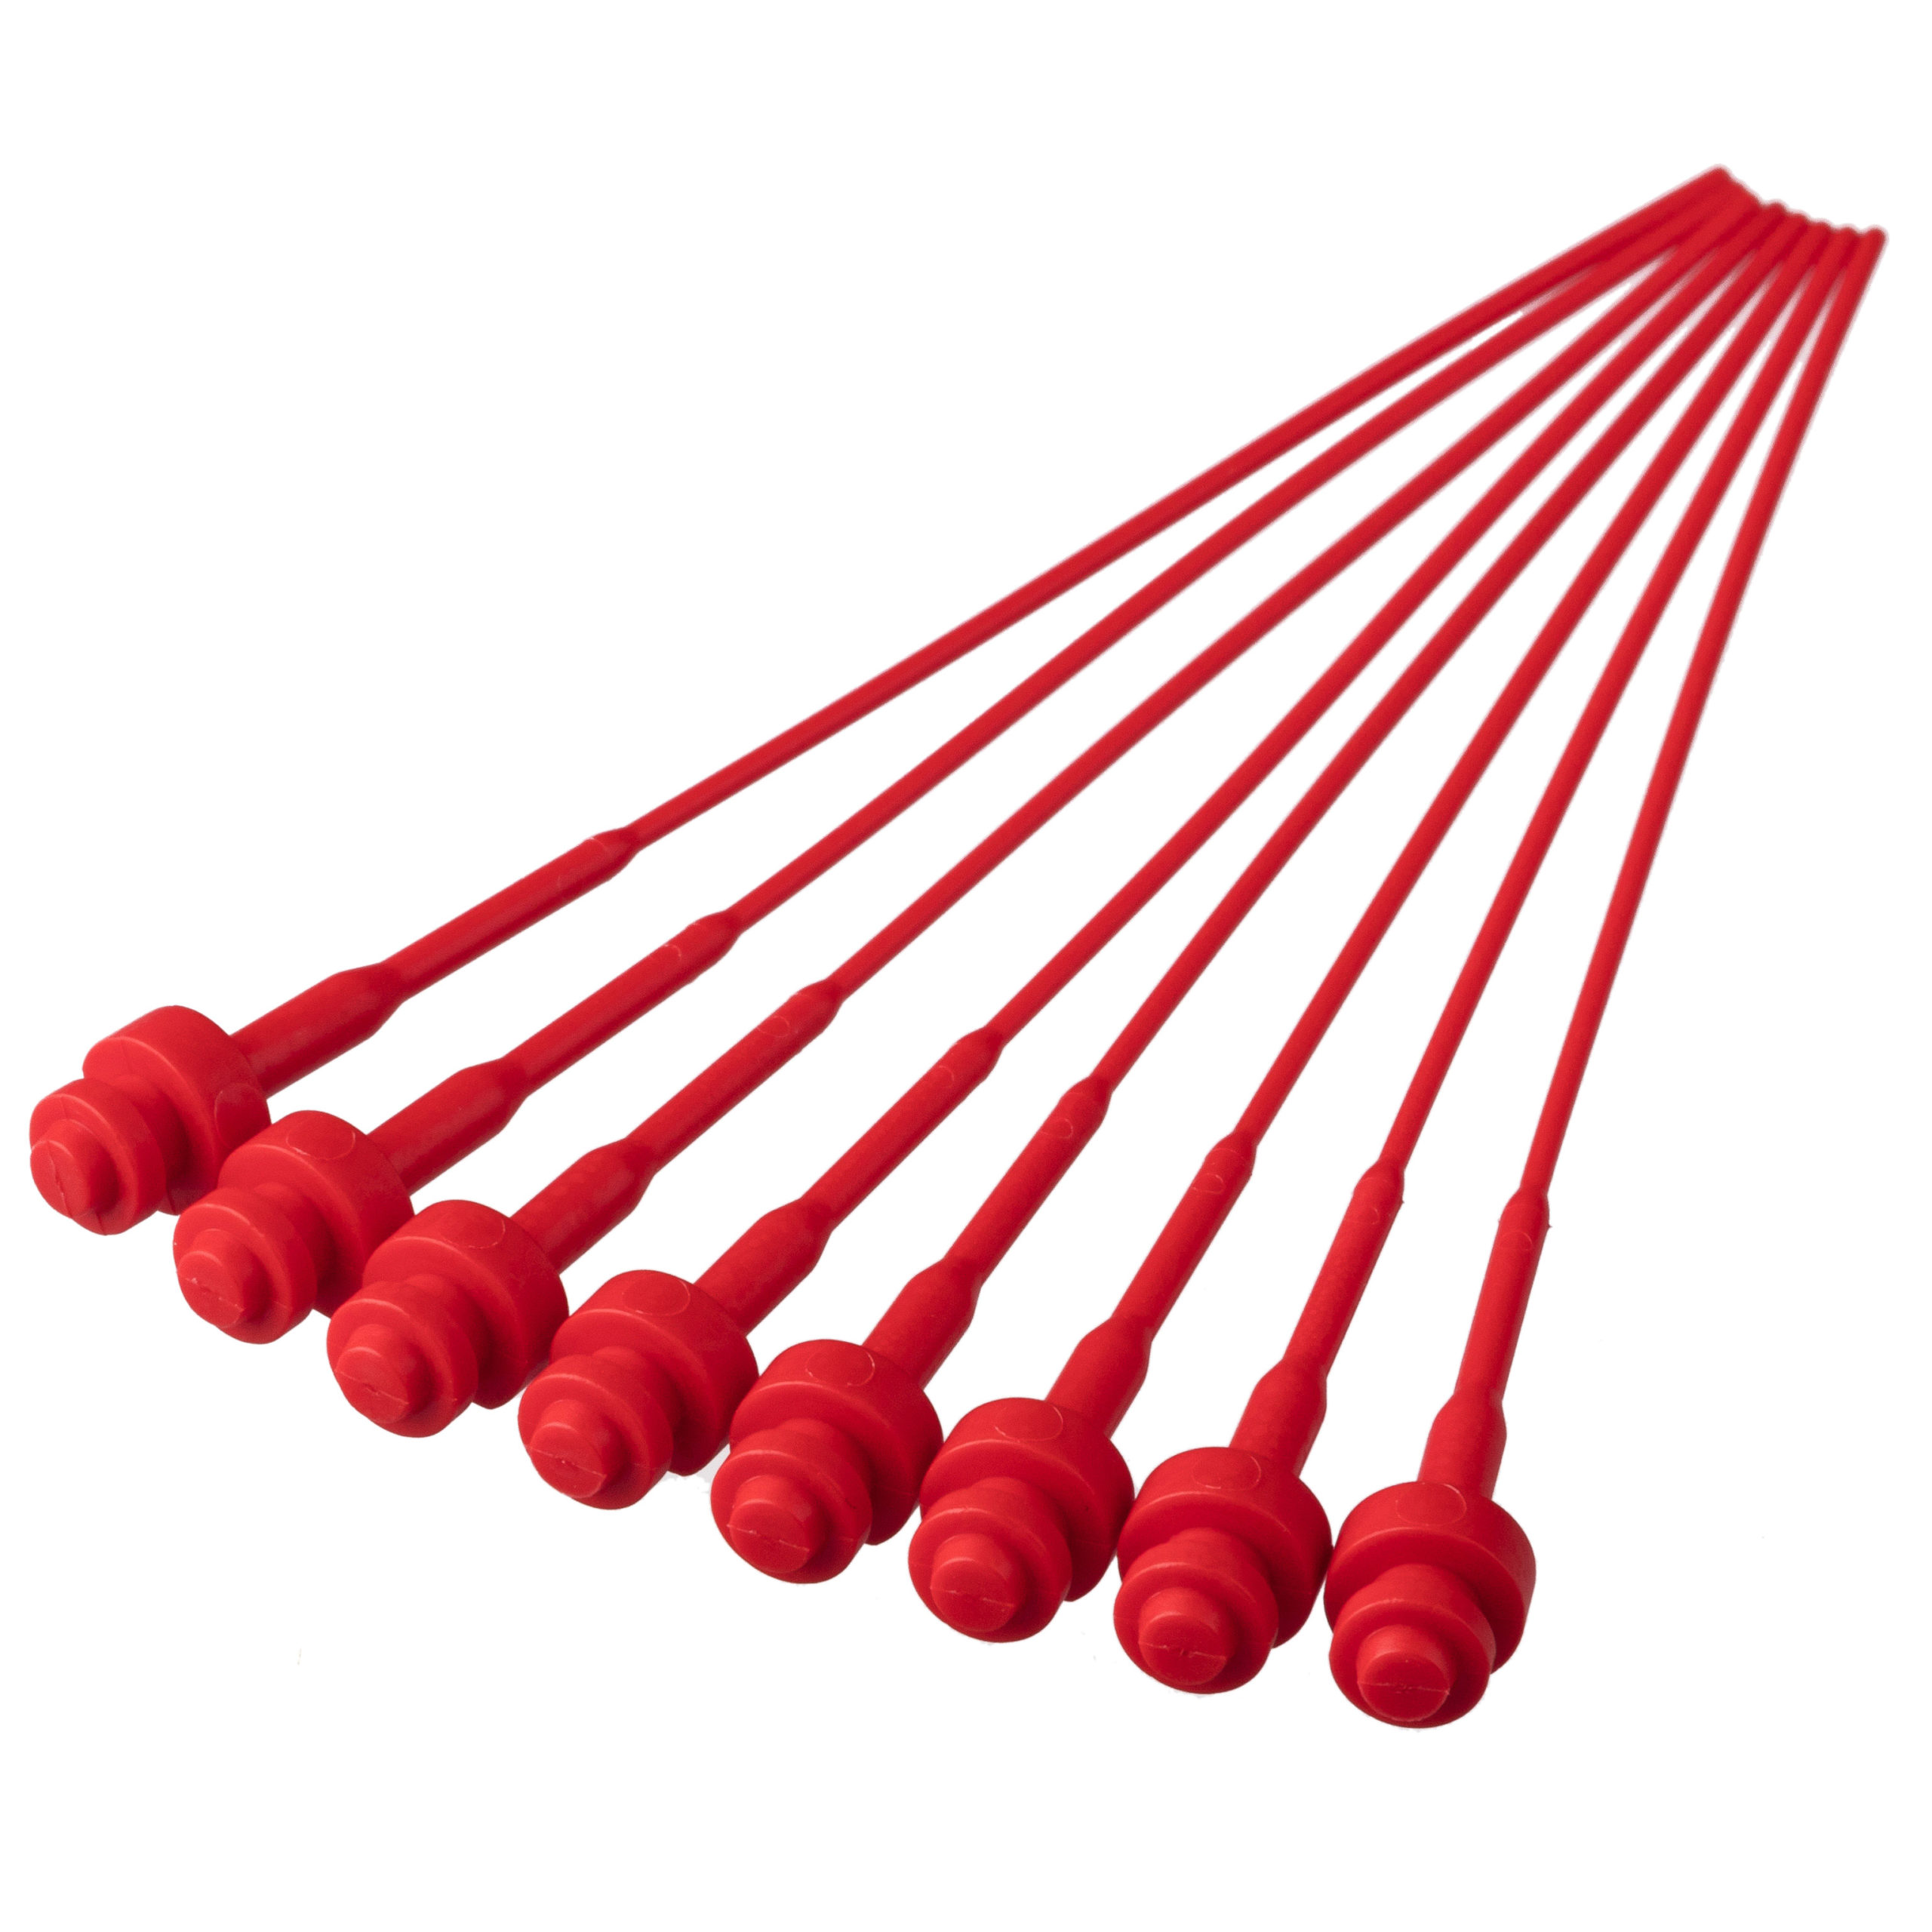 MAP Refill – Plungers n°1 red (pack of 16) - 20201